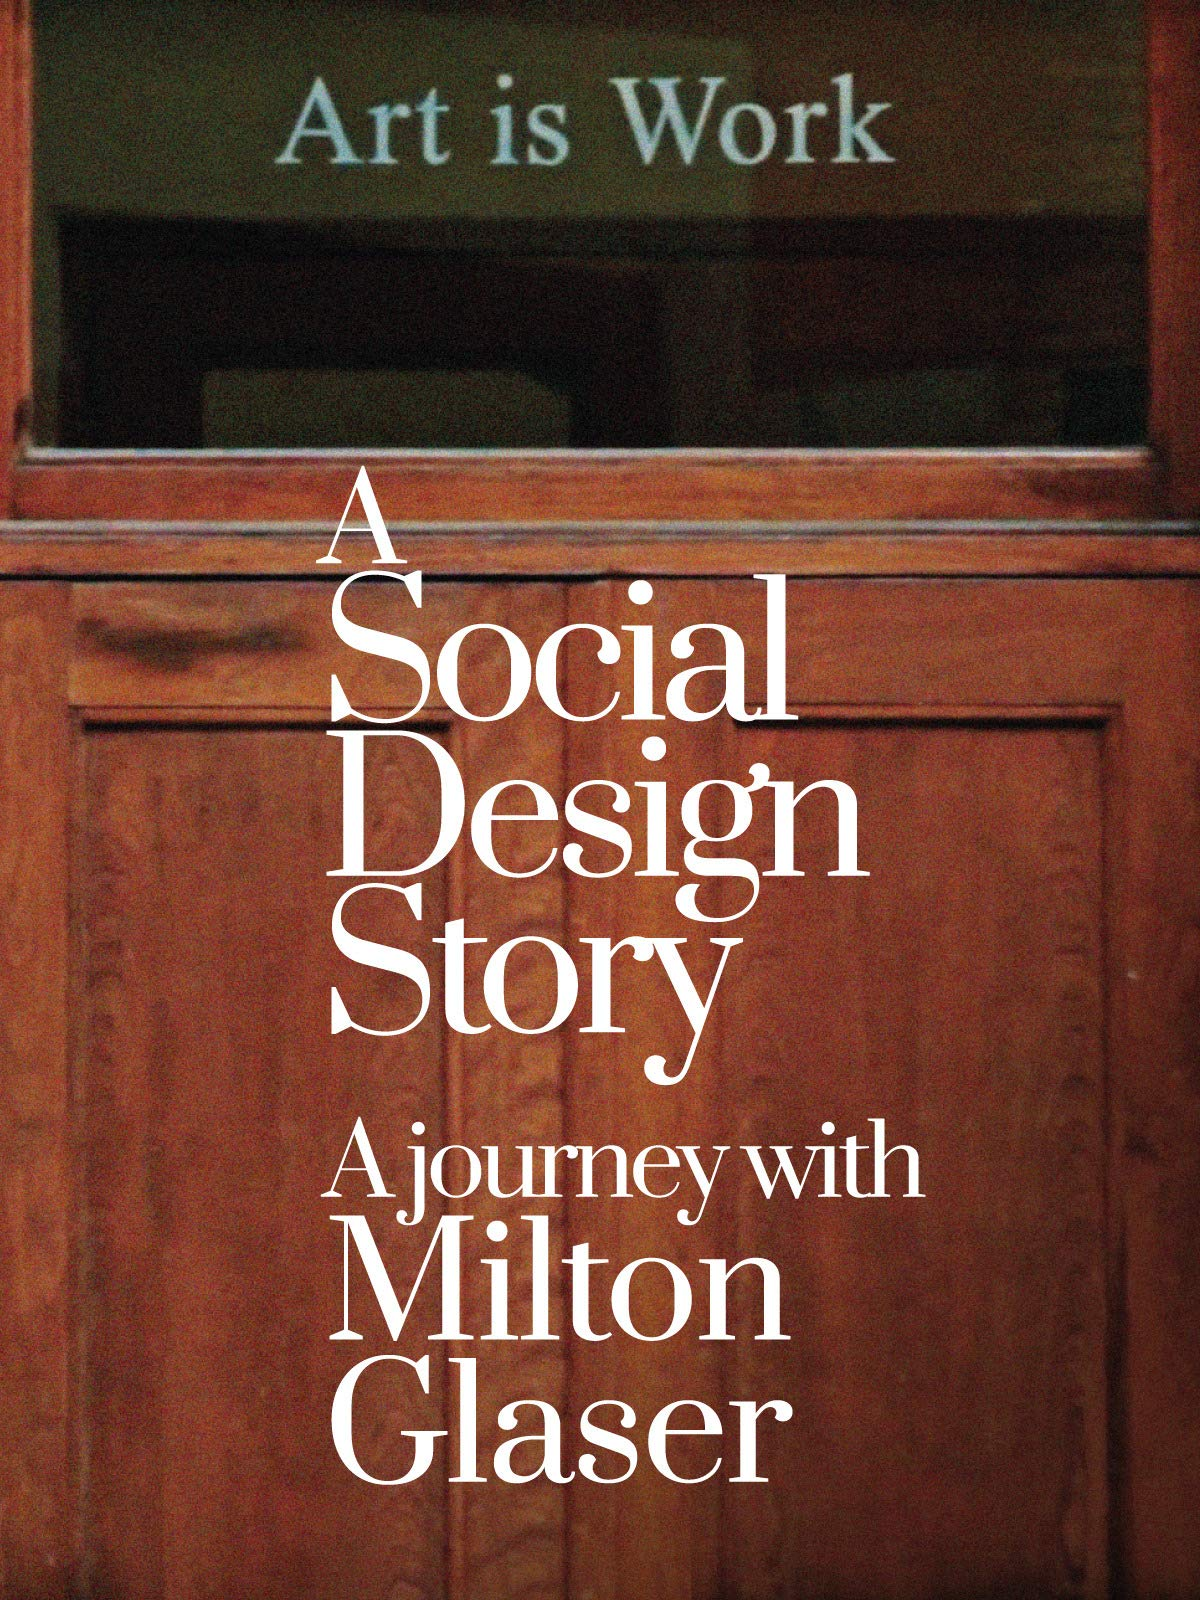 A Social Design Story - A journey with Milton Glaser